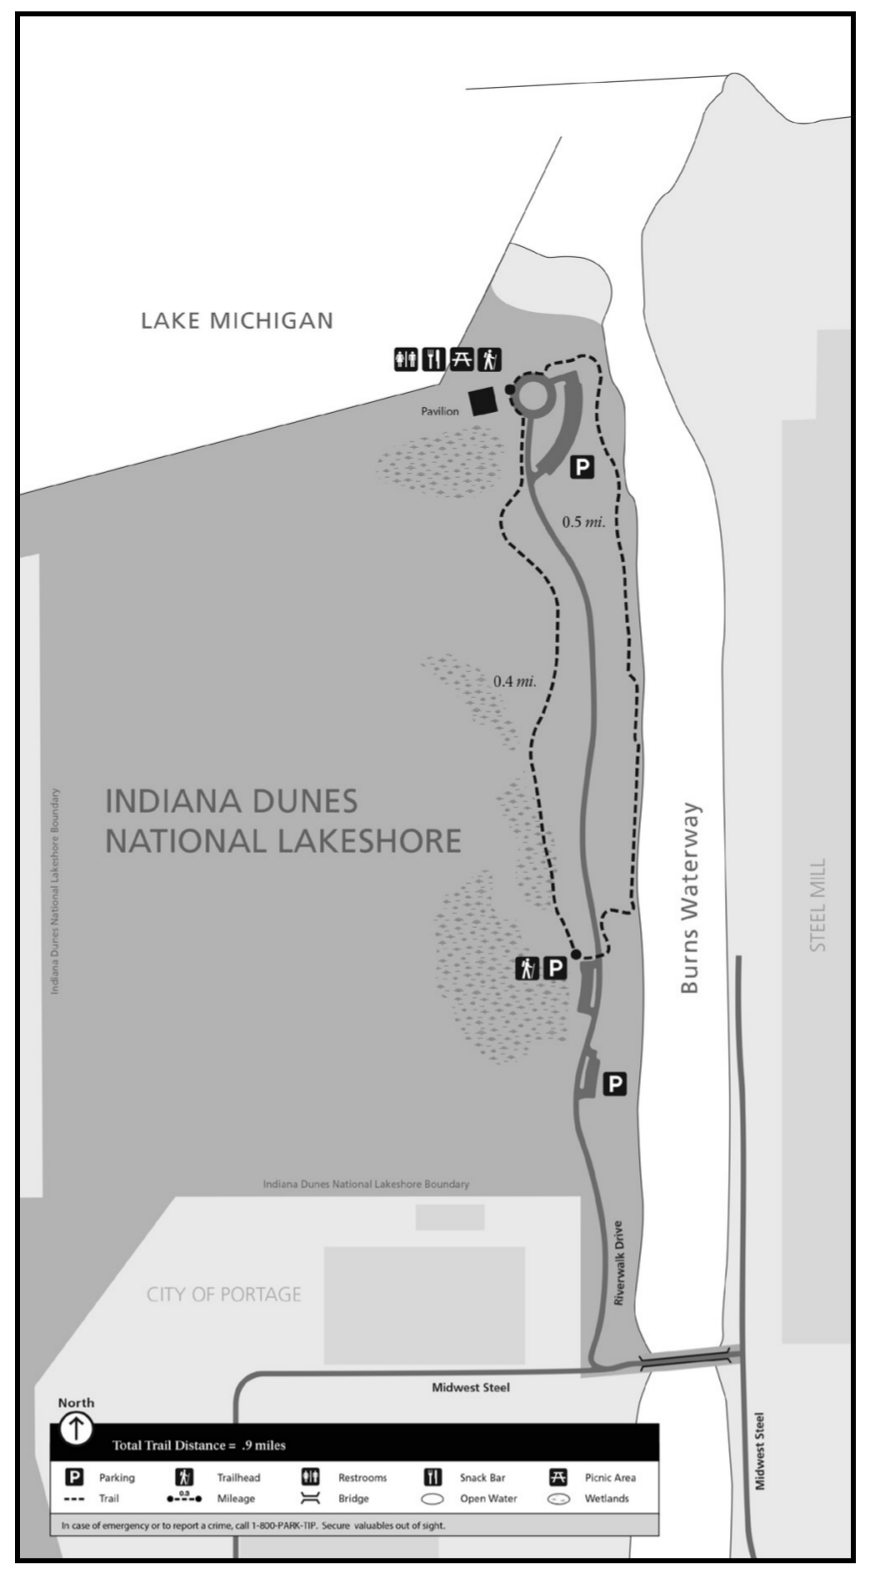 Indiana Dunes Maps | NPMaps.com - just free maps, period. on anza-borrego desert state park map, pike state forest map, indiana mounds state park map, jockey's ridge state park map, map of michigan road map, patoka lake state park map, indiana map with state parks, southern indiana state parks map, valley of fire state park map, nashville indiana state park map, mesa verde state park map, falls of the ohio state park map, chain o'lakes state park map, indiana shades state park campground, michigan shore to shore trail map, van damme state park map, world's end state park map, joshua tree state park map, brookville indiana state park map, ouabache state park map,